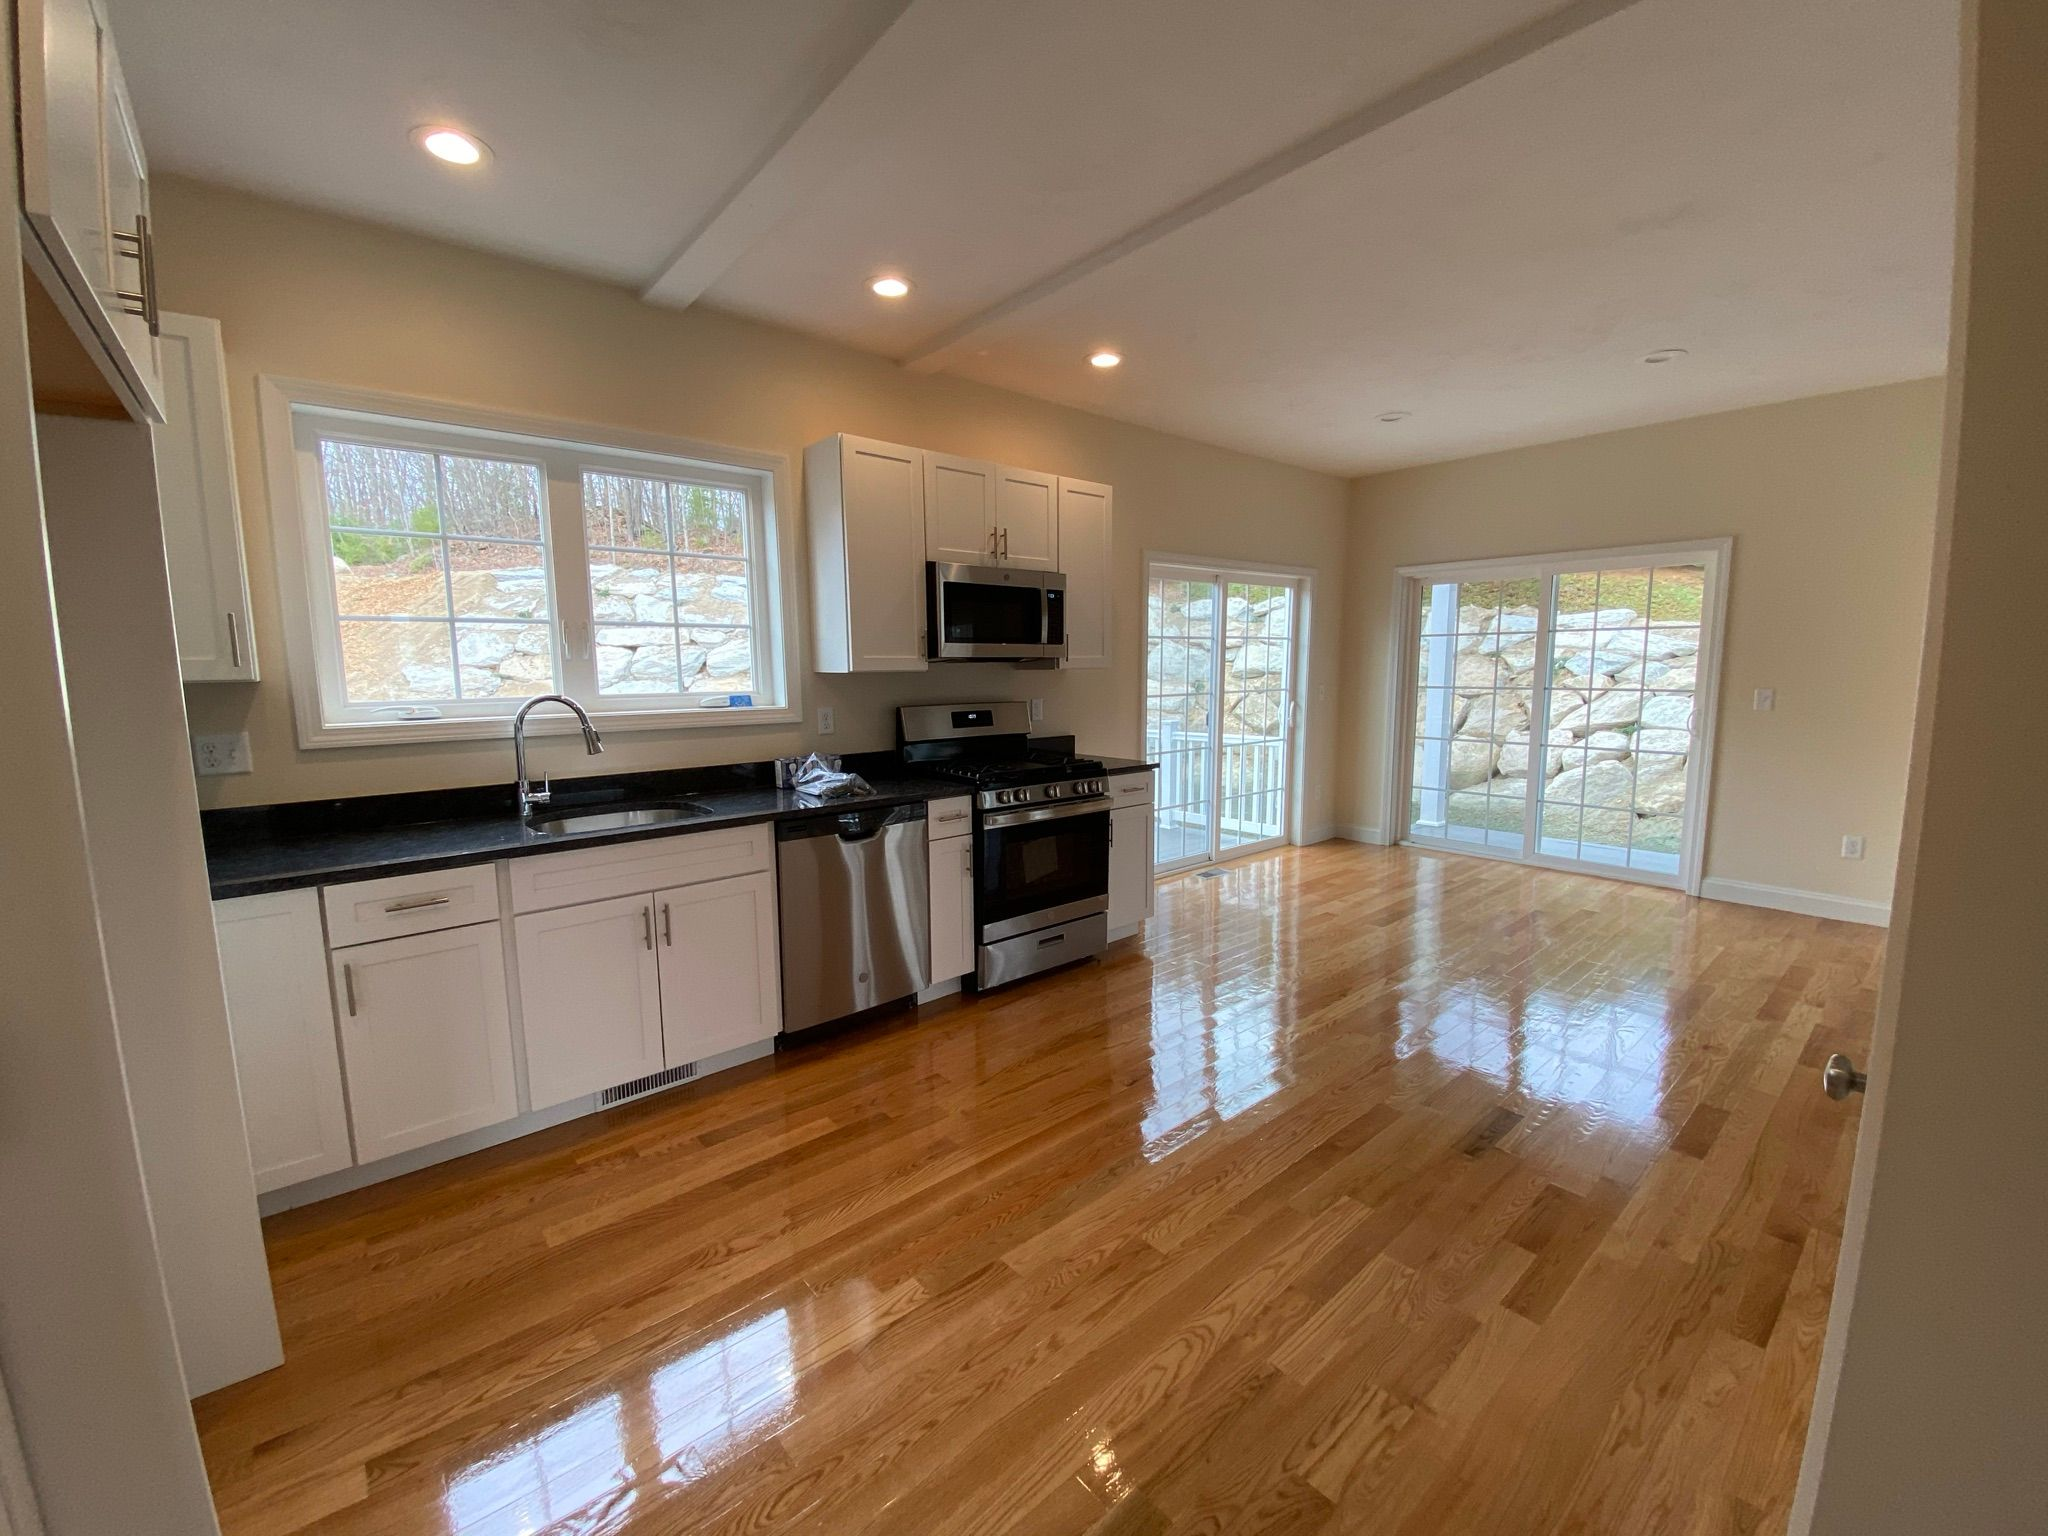 Kitchen featured in The Millennium Villager By Fafard Real Estate in Worcester, MA